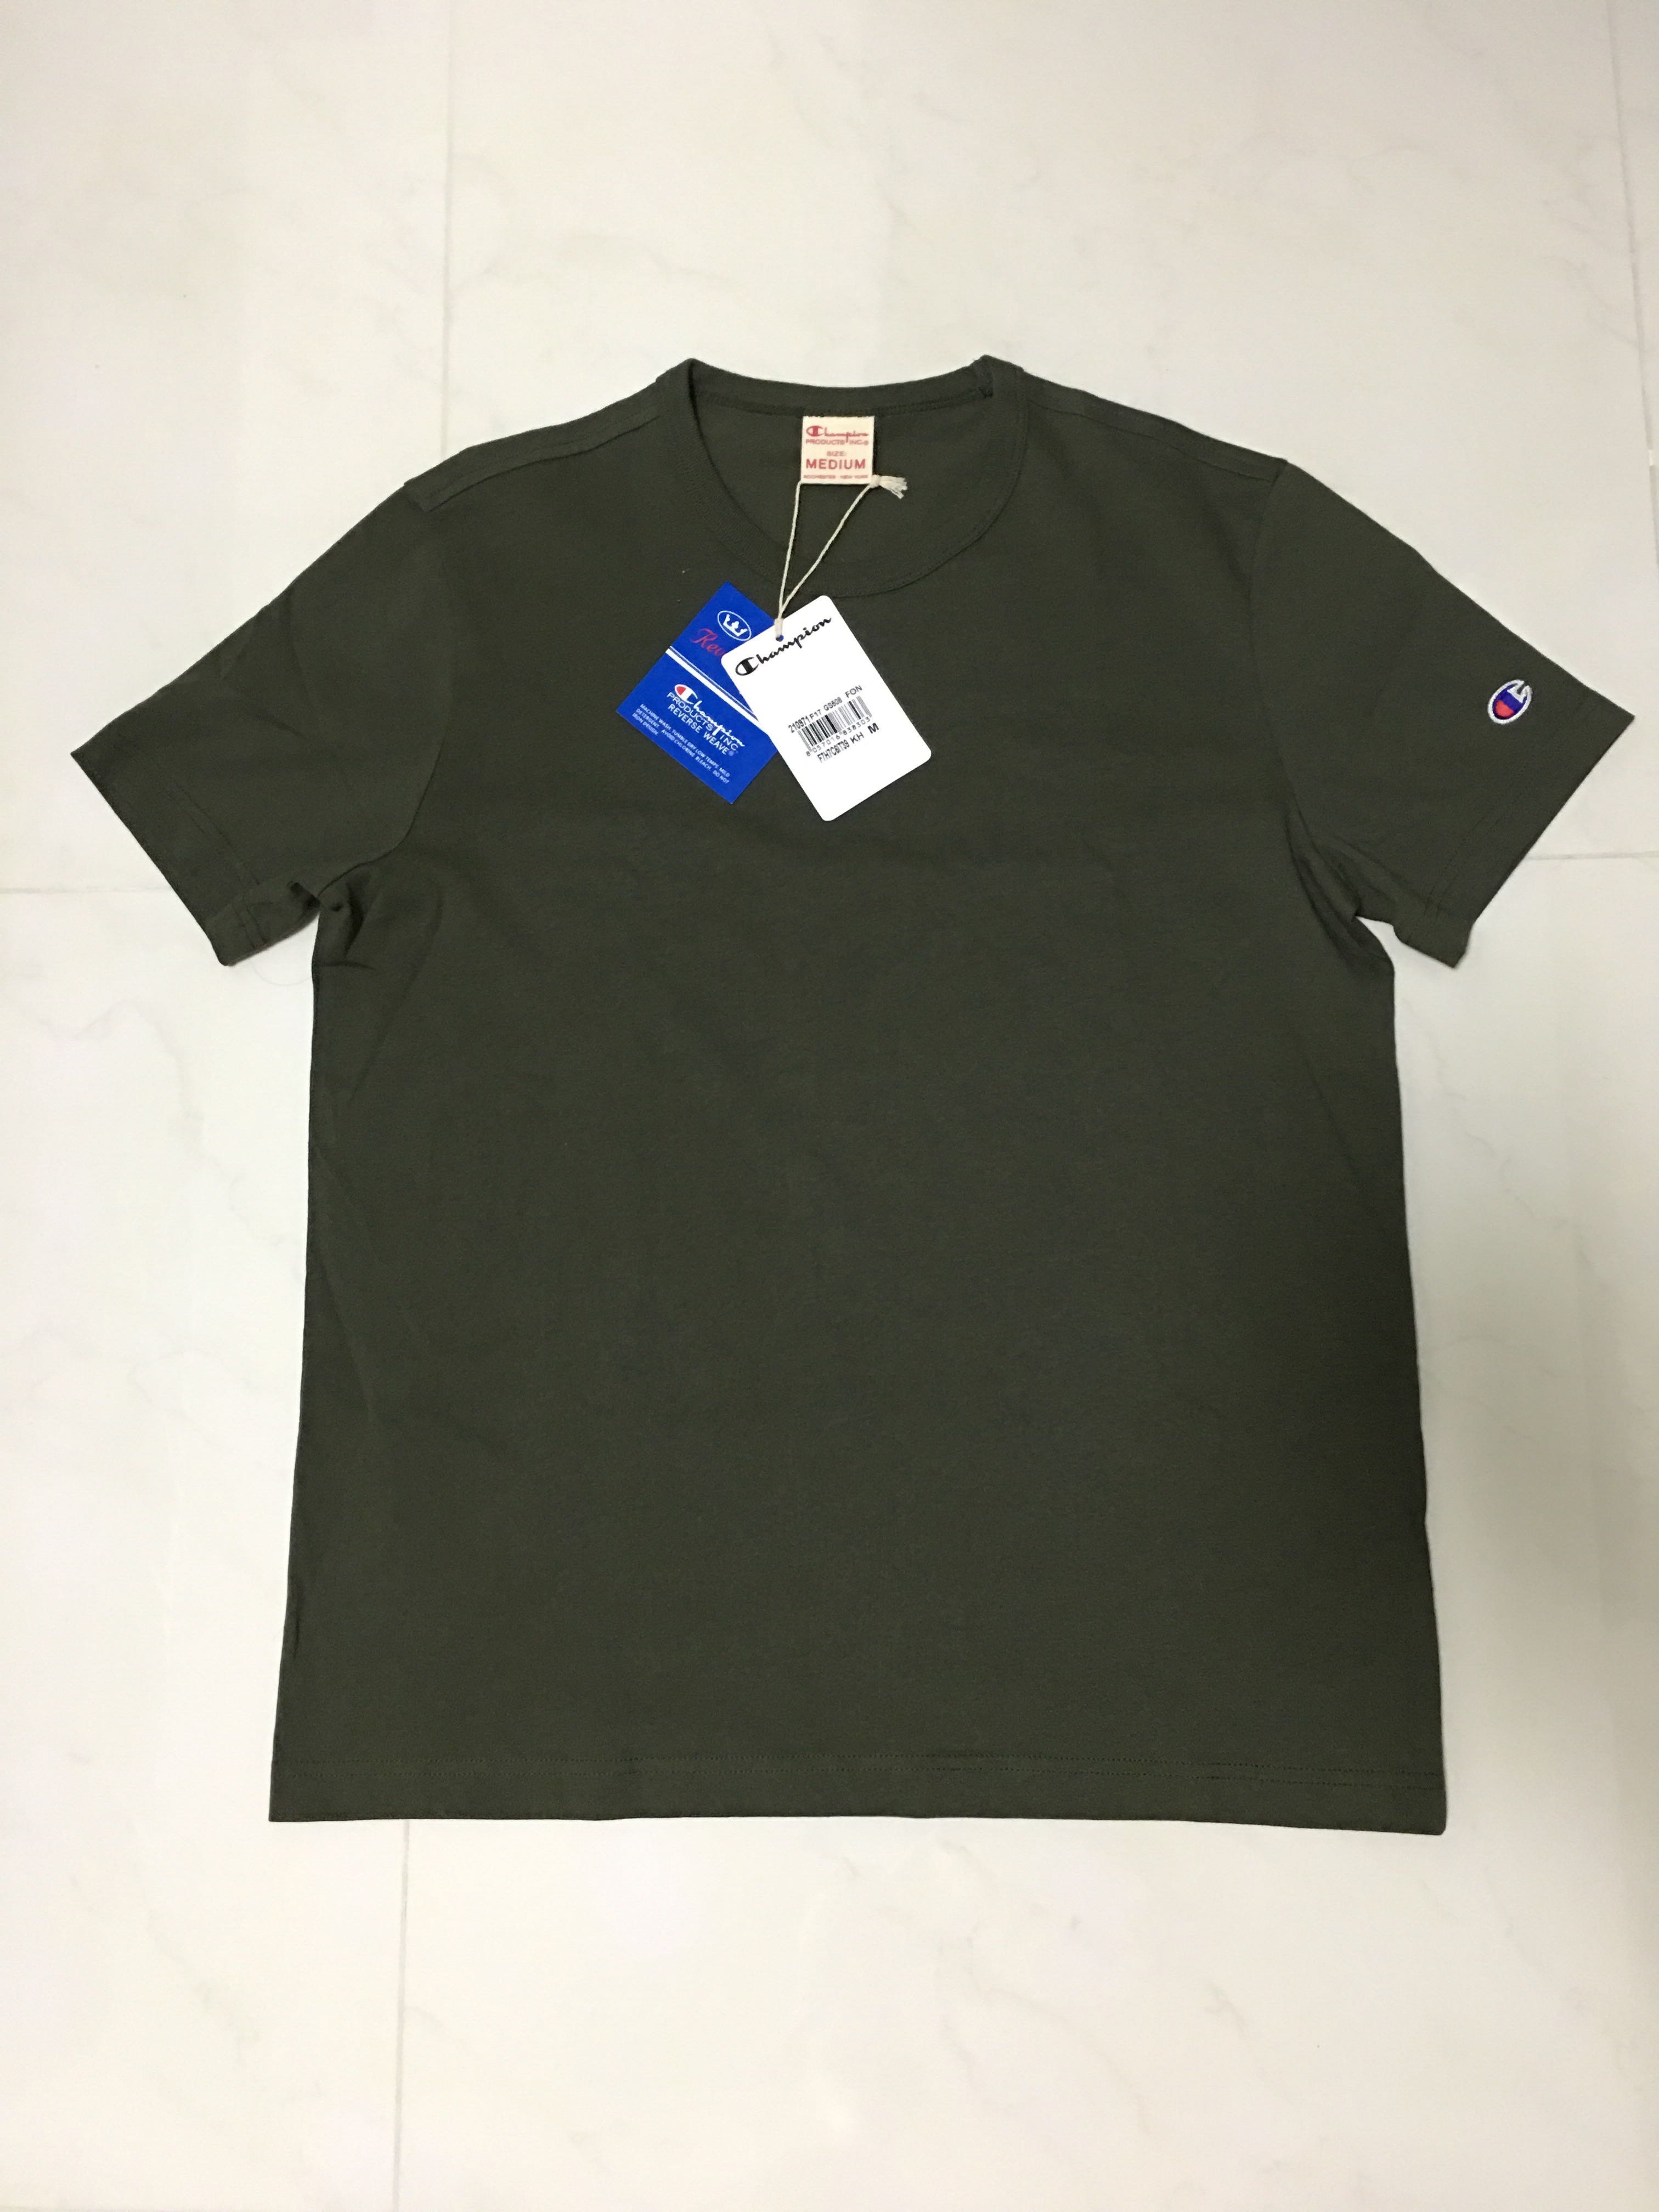 77da8ad00 WTS Champion Reverse Weave Tee, Men's Fashion, Clothes on Carousell